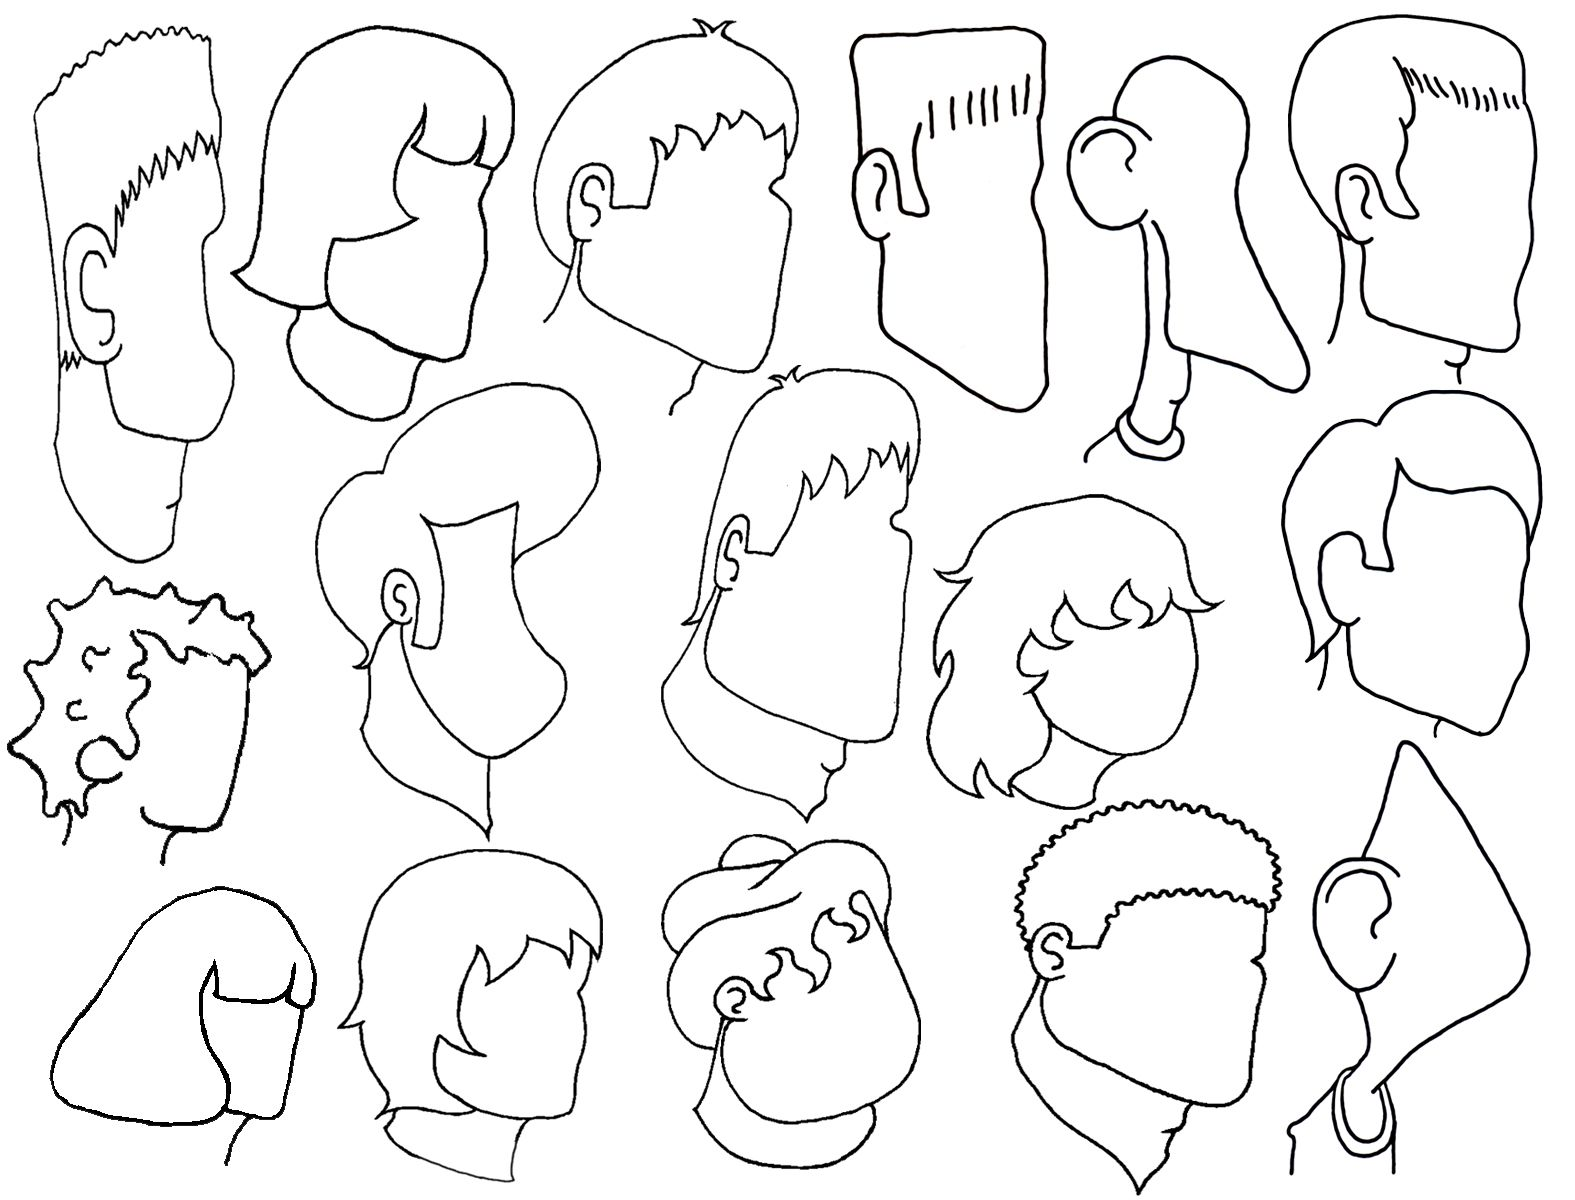 Profile characters. Features and more at site.